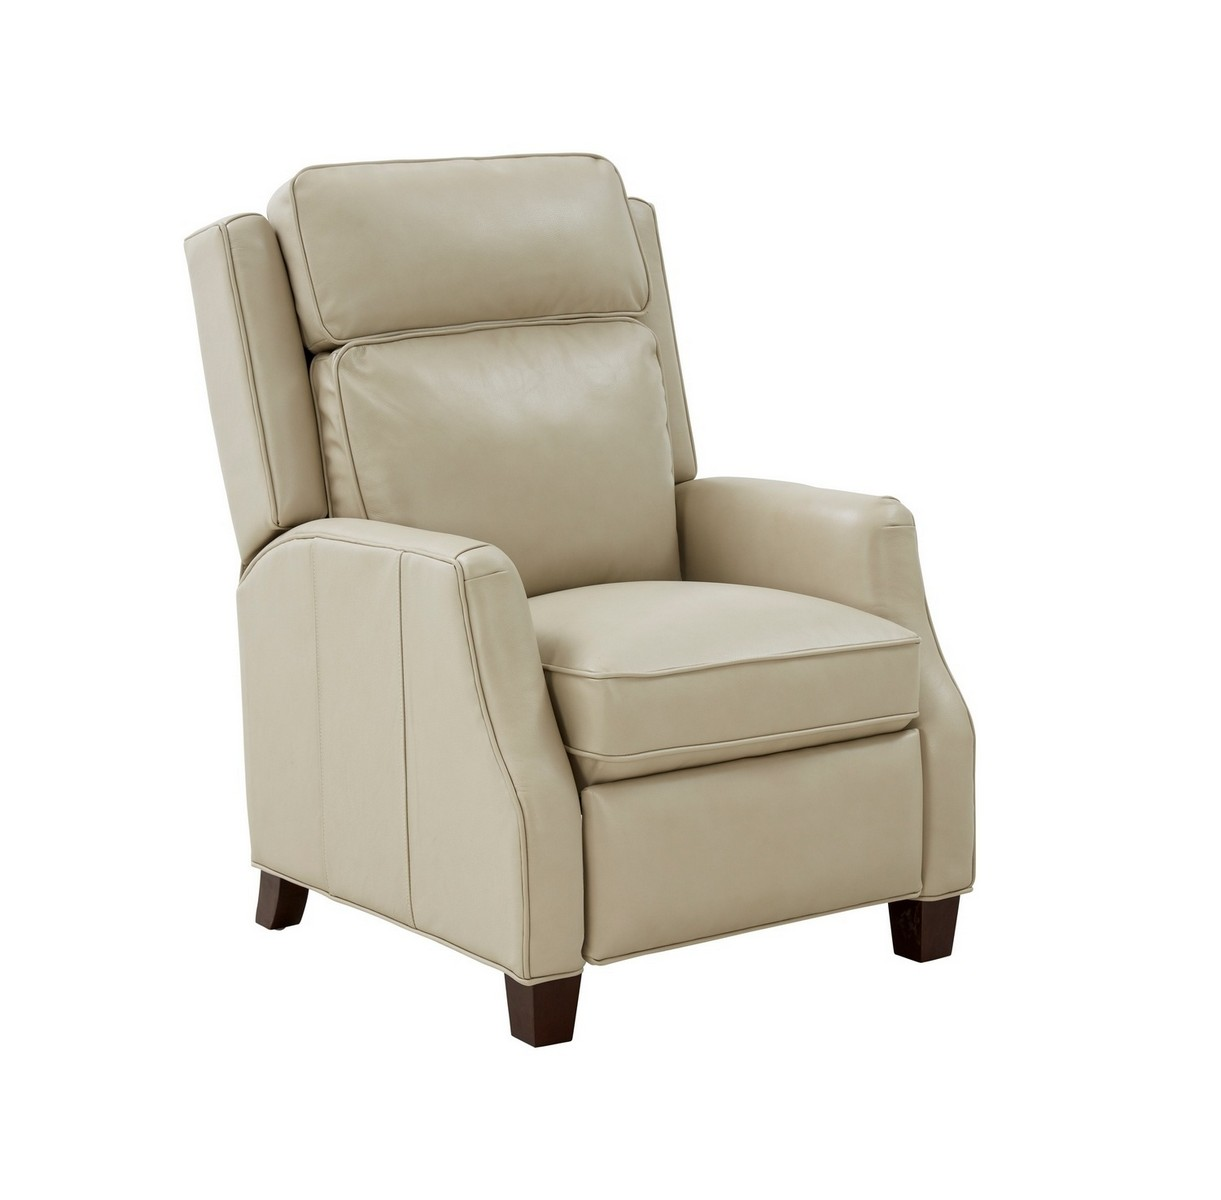 Barcalounger Nixon Recliner Chair - Barone Parchment/All Leather